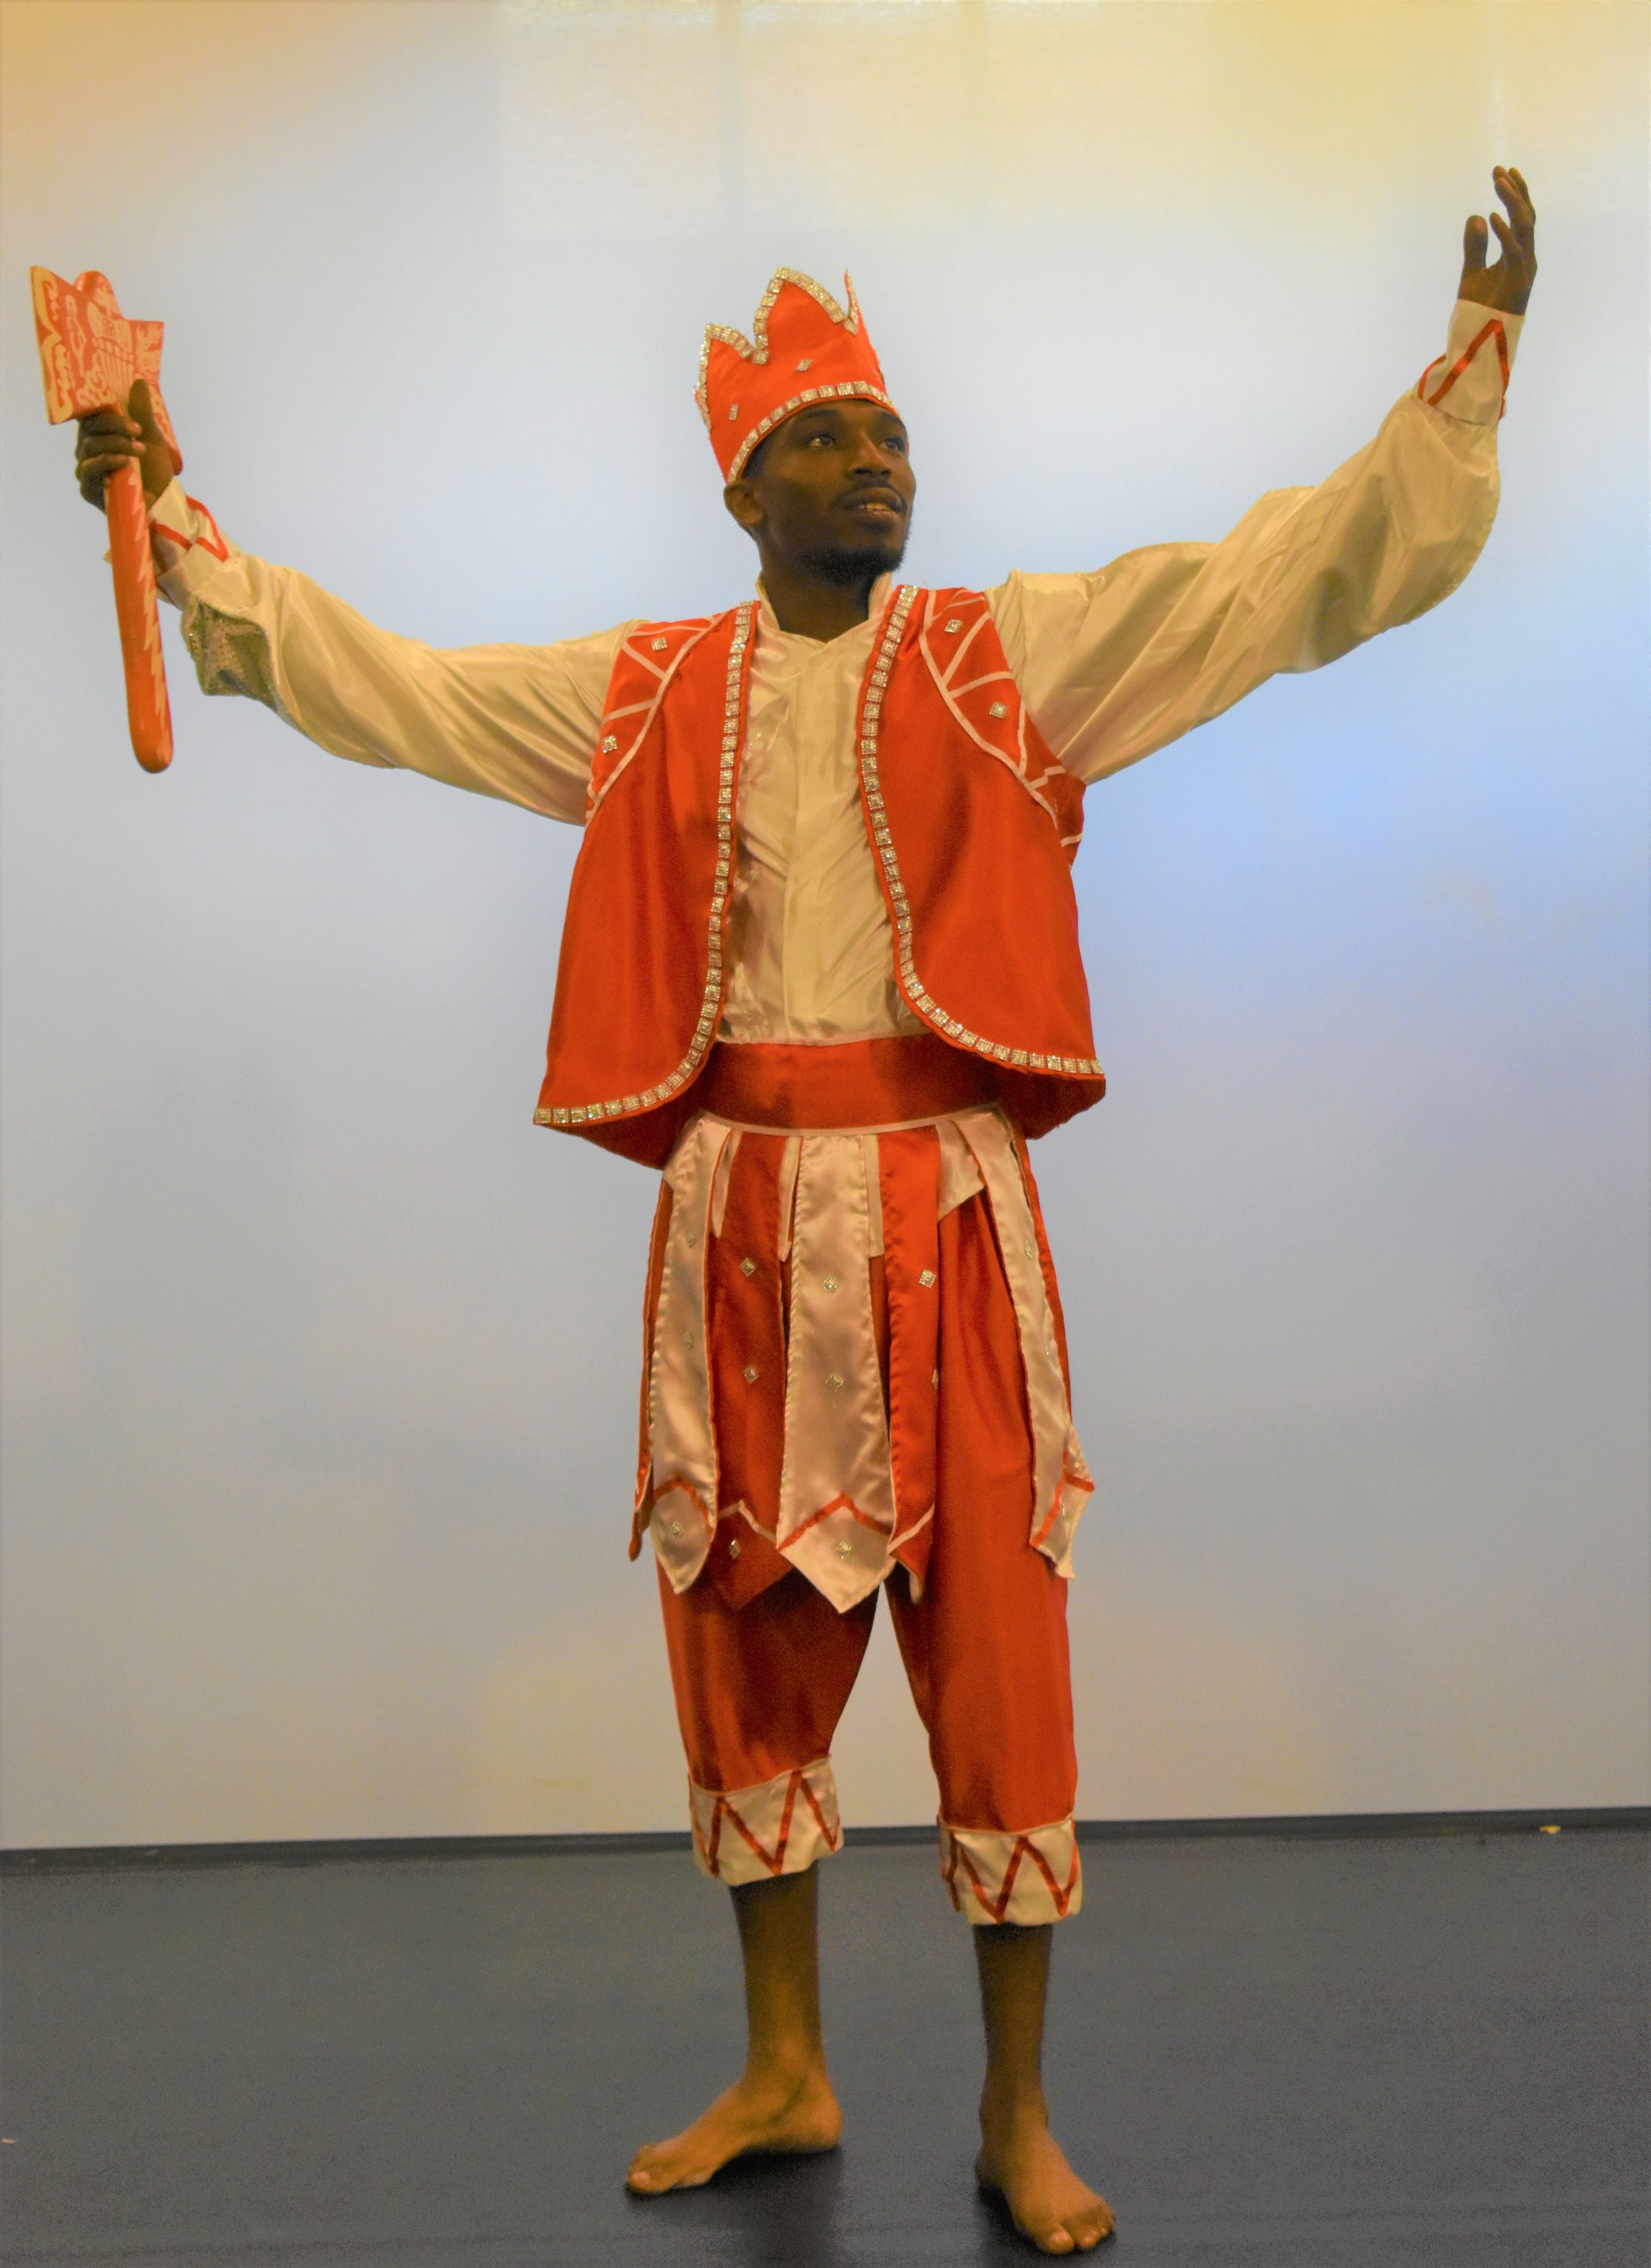 Yusuf Young as Shango, the god of thunder and lighting, who is one of the most powerful and feared orishas. -